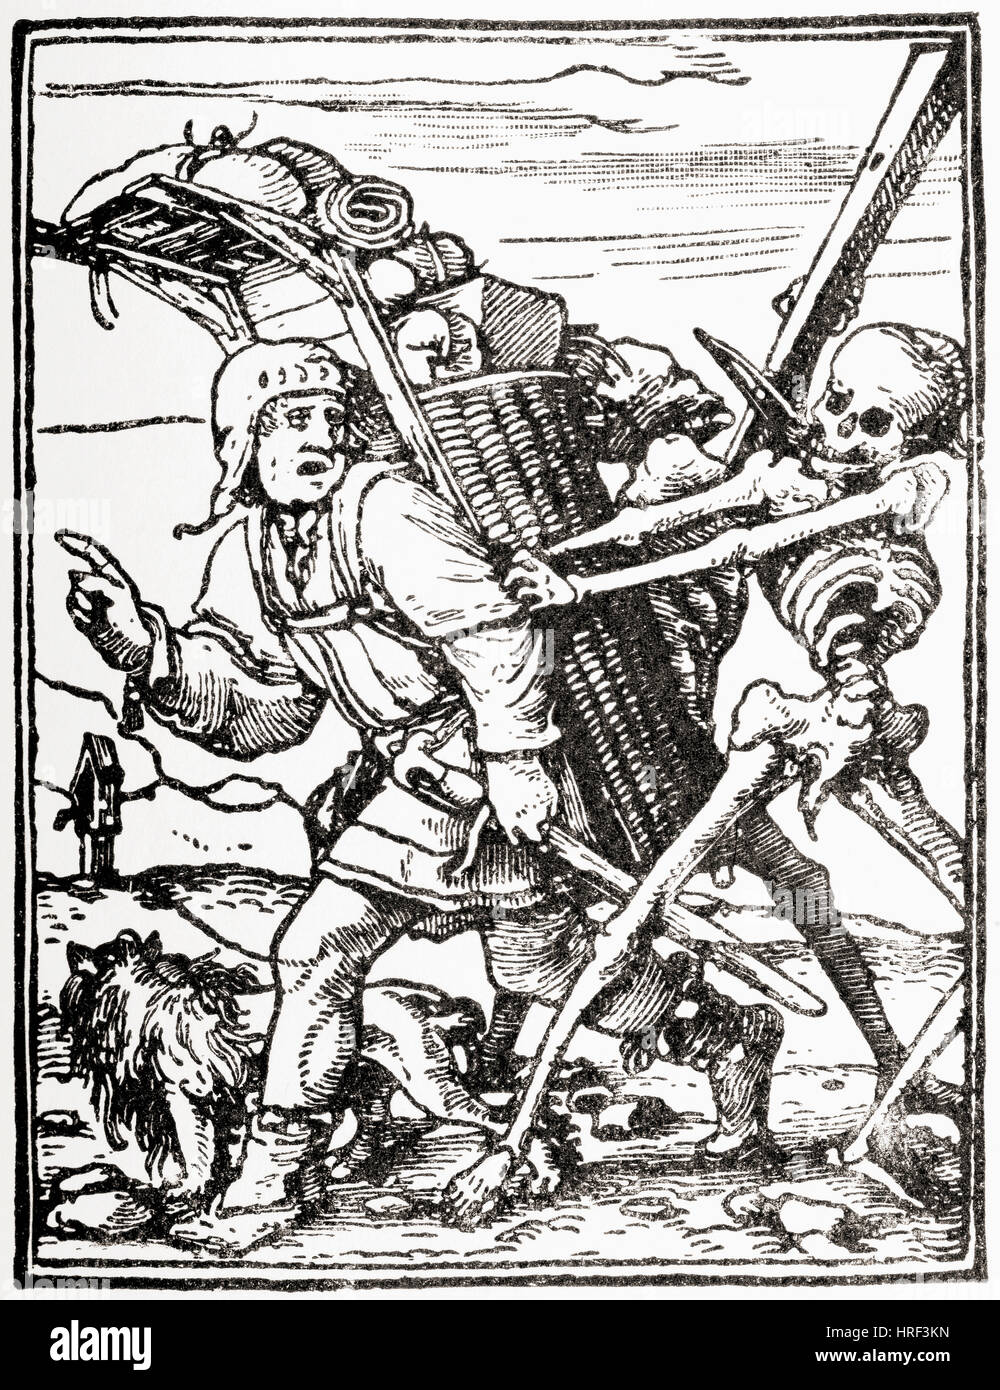 """The Peddler, woodcut designed by Hans Holbein the Younger, (1497-1543) for the """"Dance of Death'series, 1523–26. - Stock Image"""